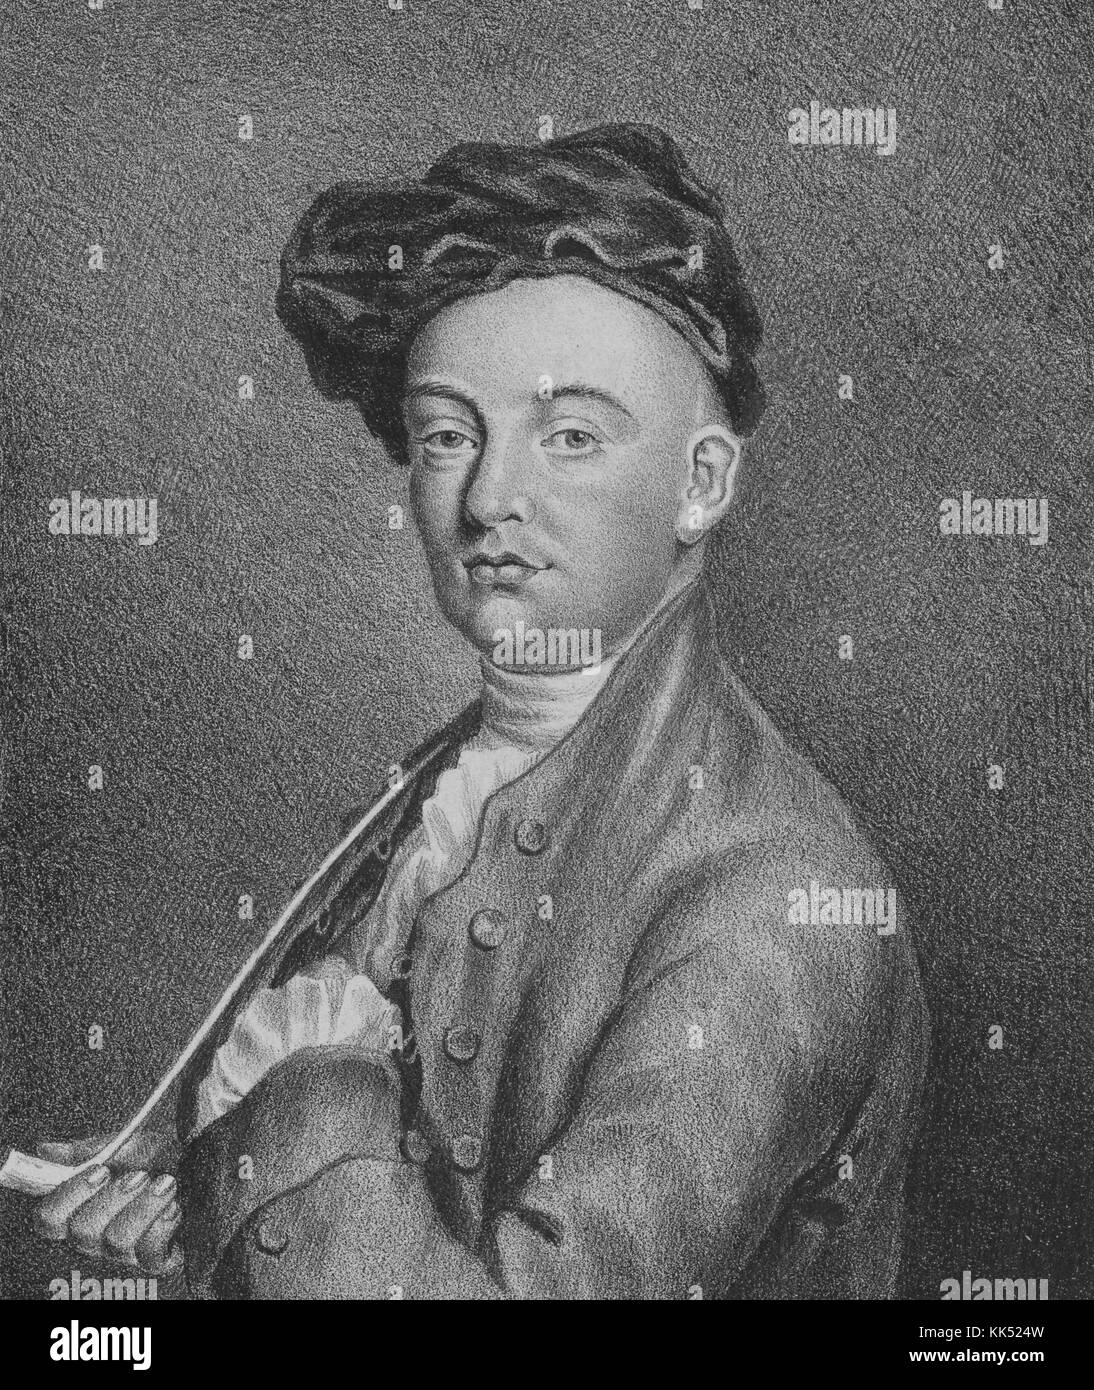 Engraved self portrait of William Hogarth, English painter, printmaker, pictorial satirist, social critic, and editorial - Stock Image